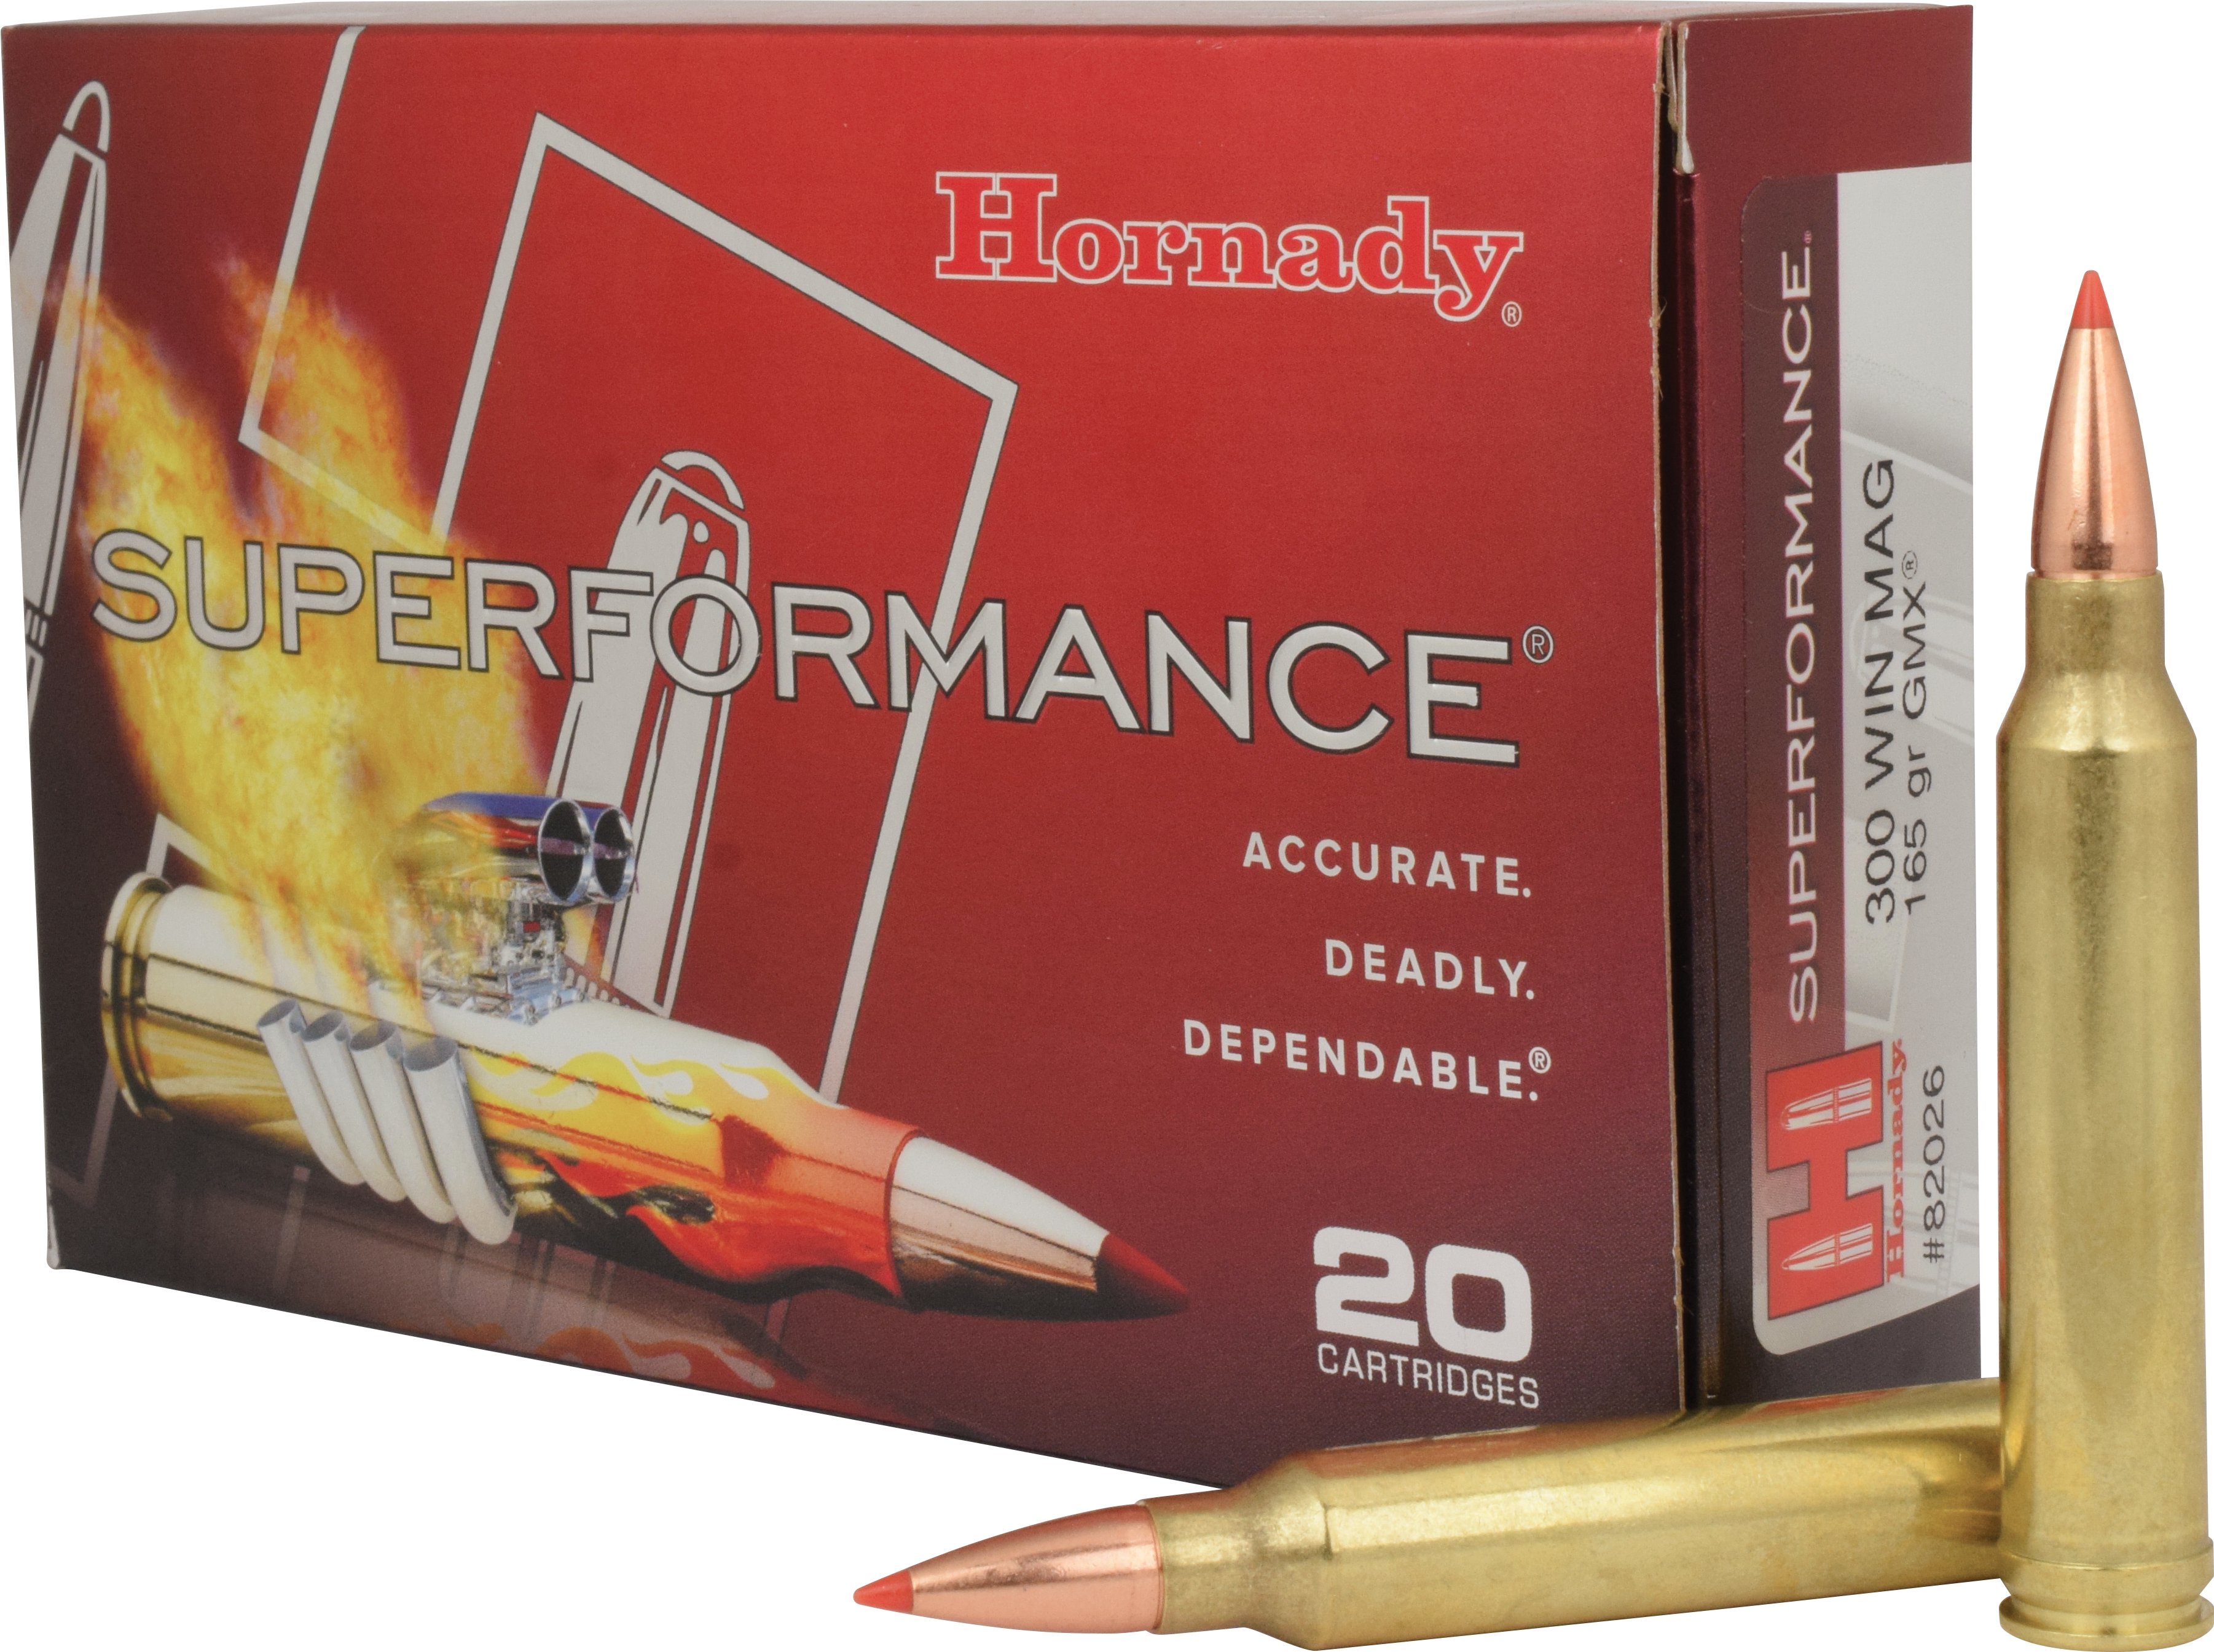 Hornady Superformance Ammunition 6.5 Creedmoor 120GR GMX Polymer Tip Per 20